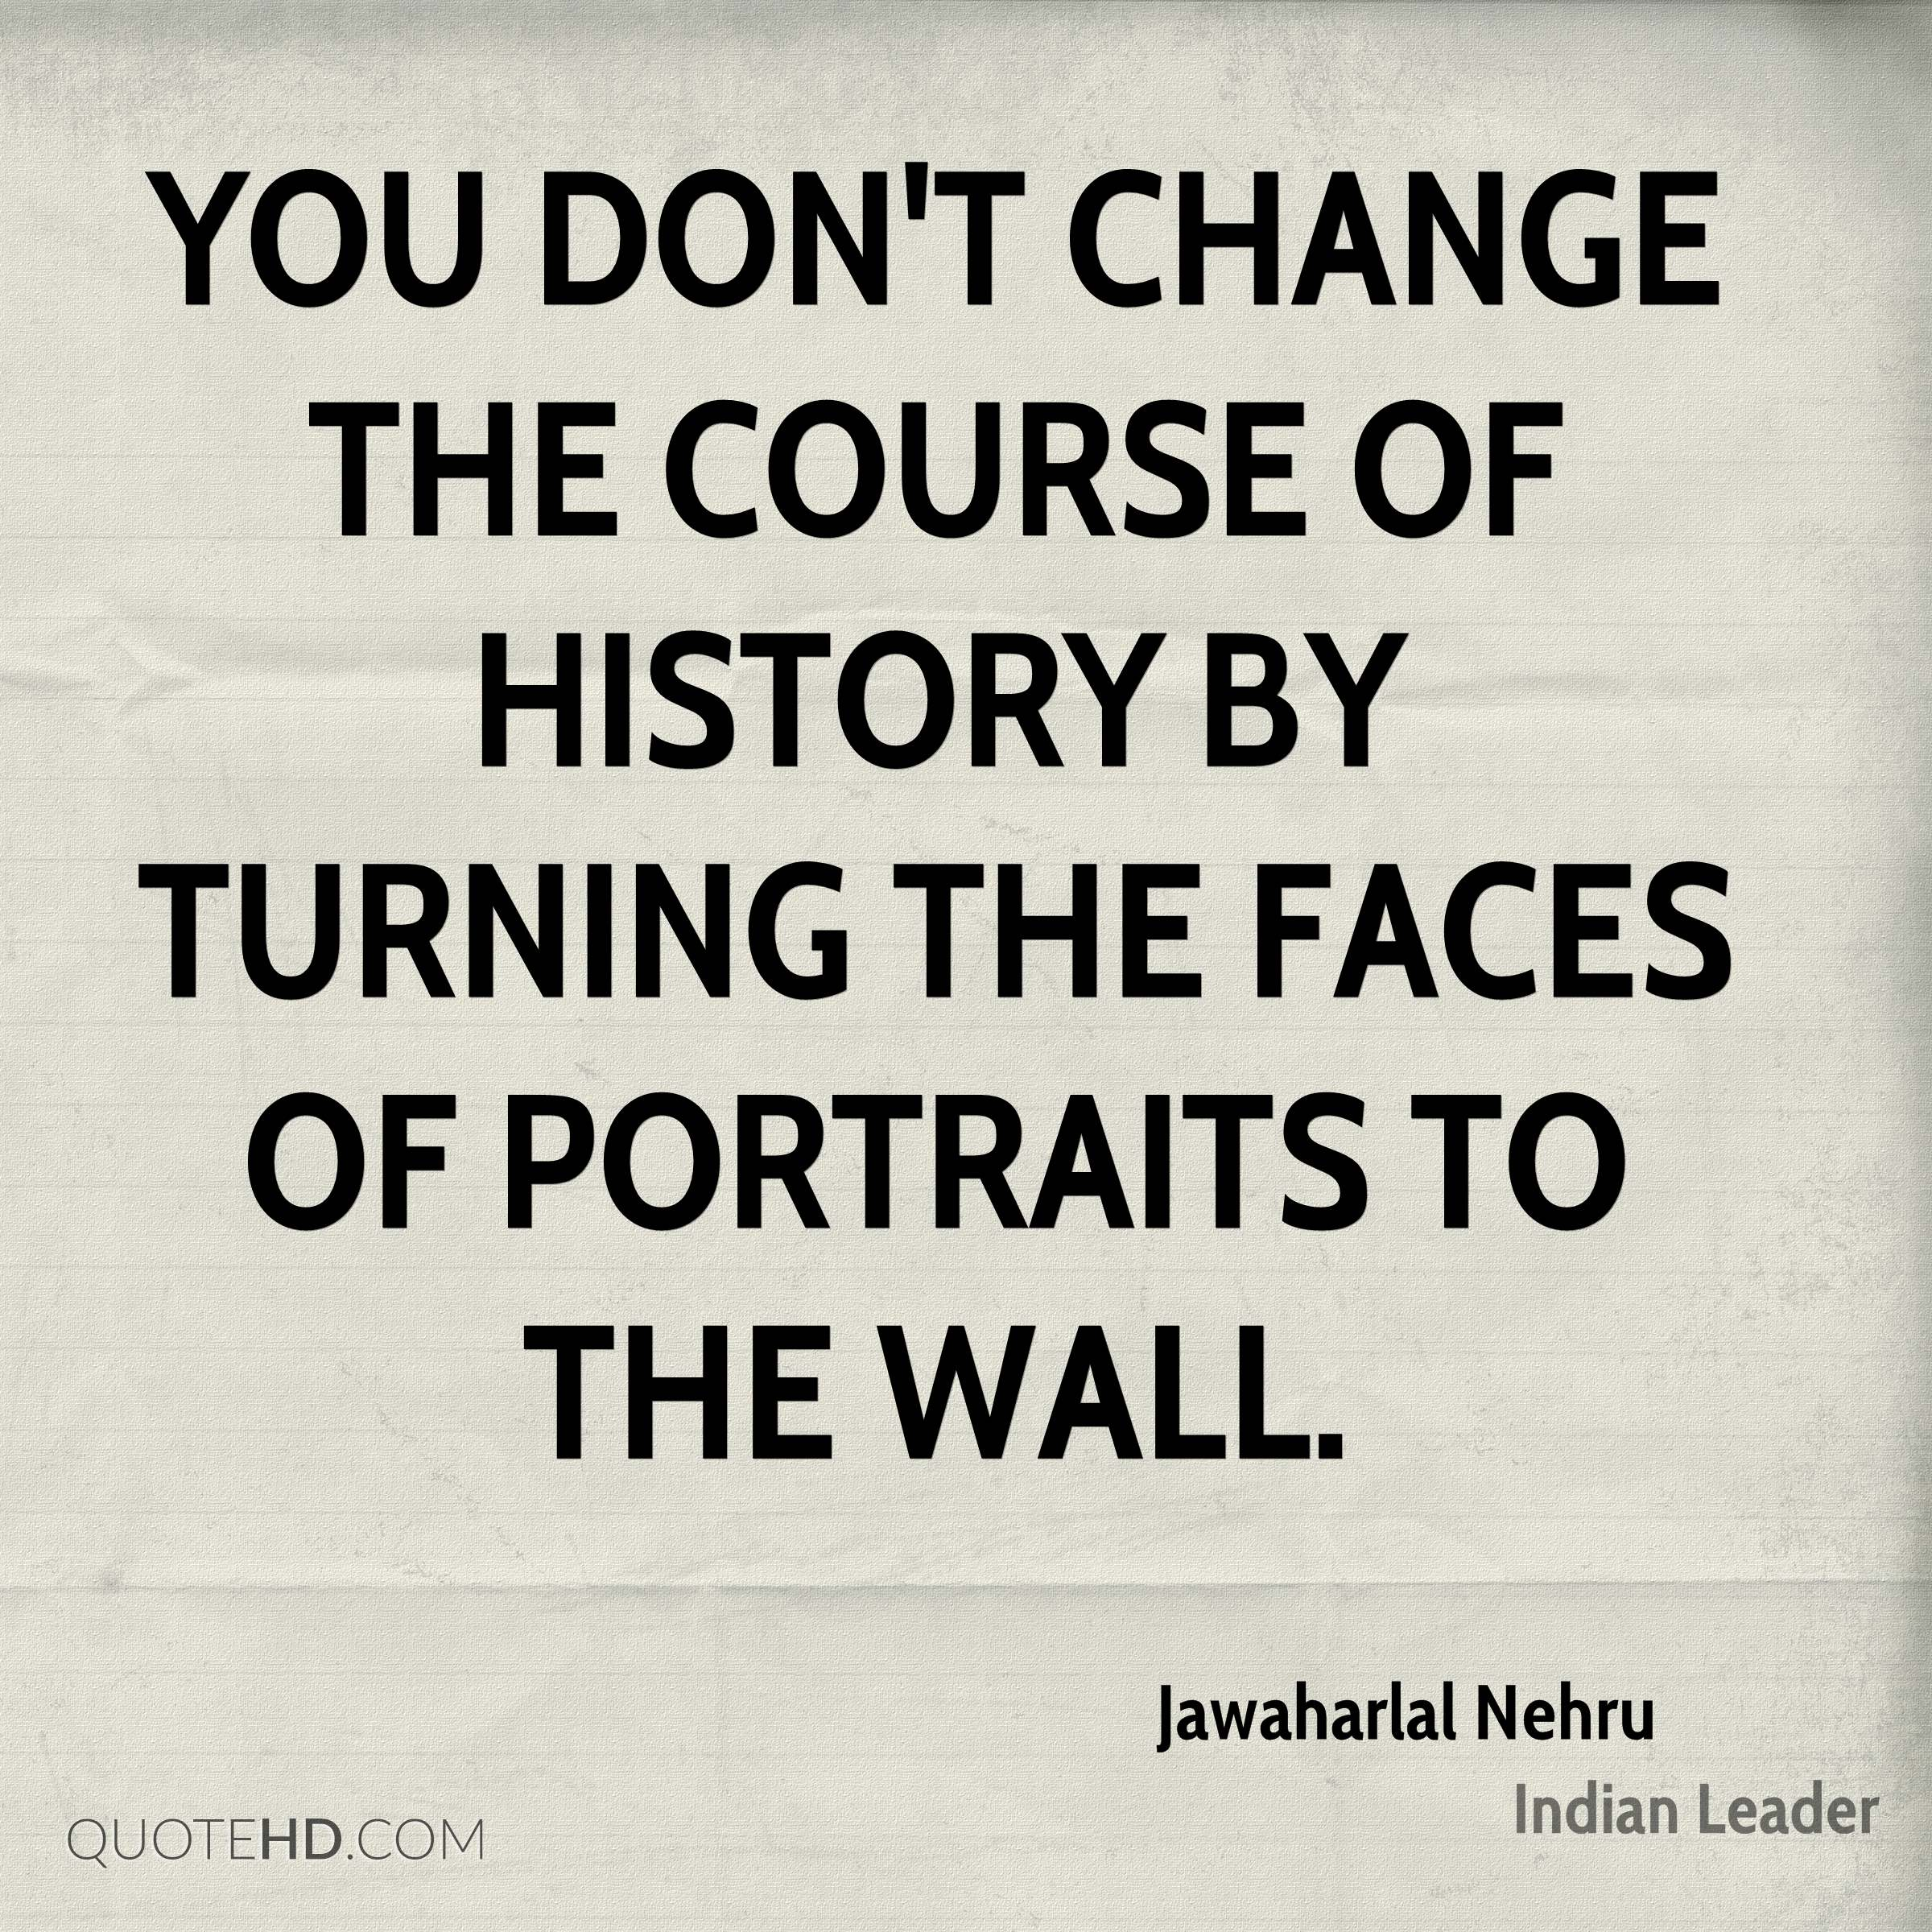 You don't change the course of history by turning the faces of portraits to the wall.